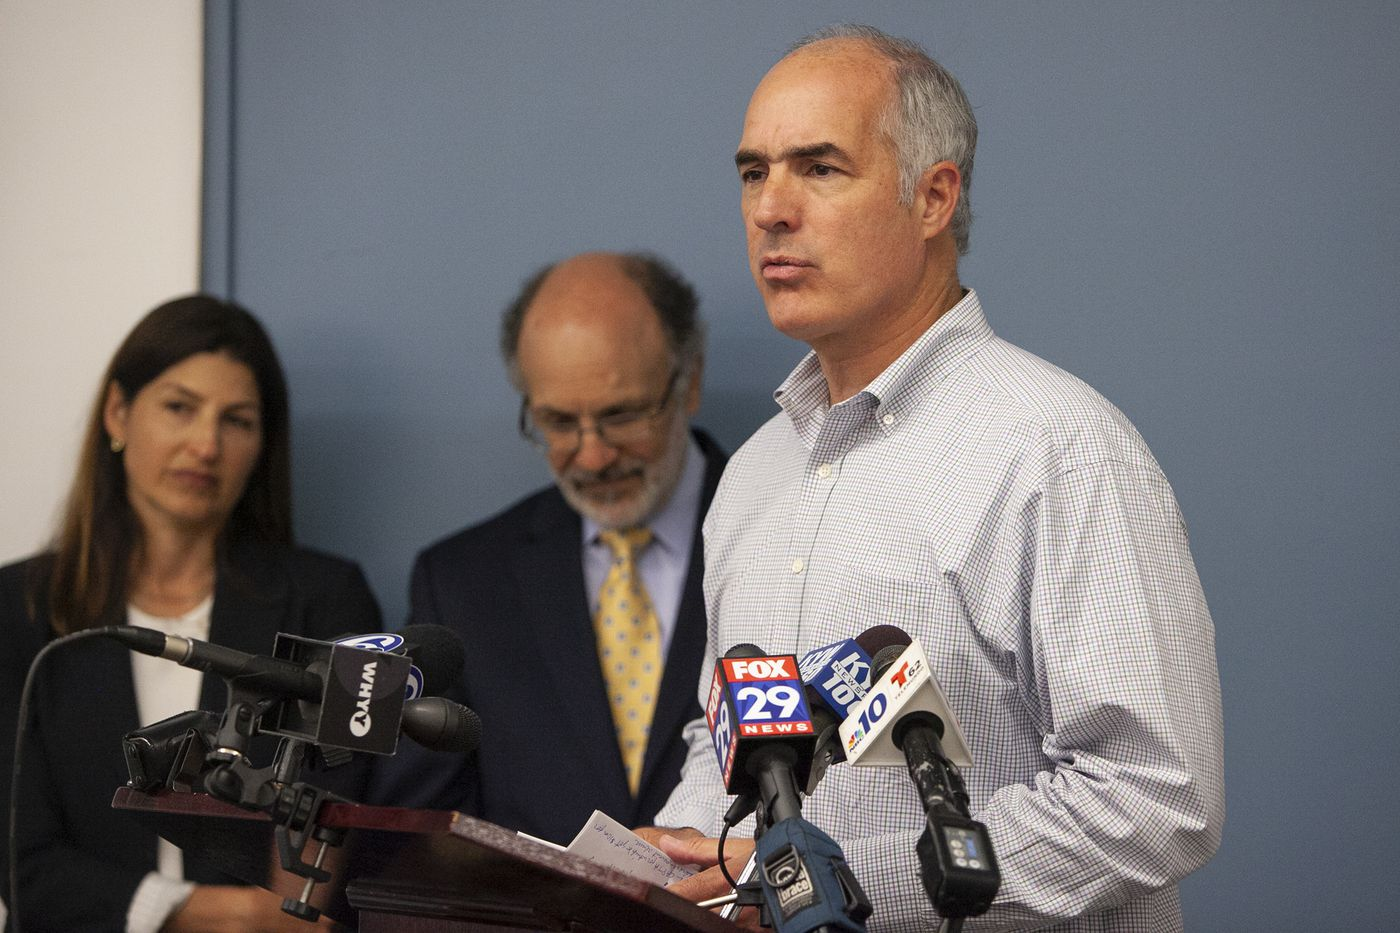 Sen. Bob Casey demands more accountability after Pa. grand jury report on clergy sex abuse